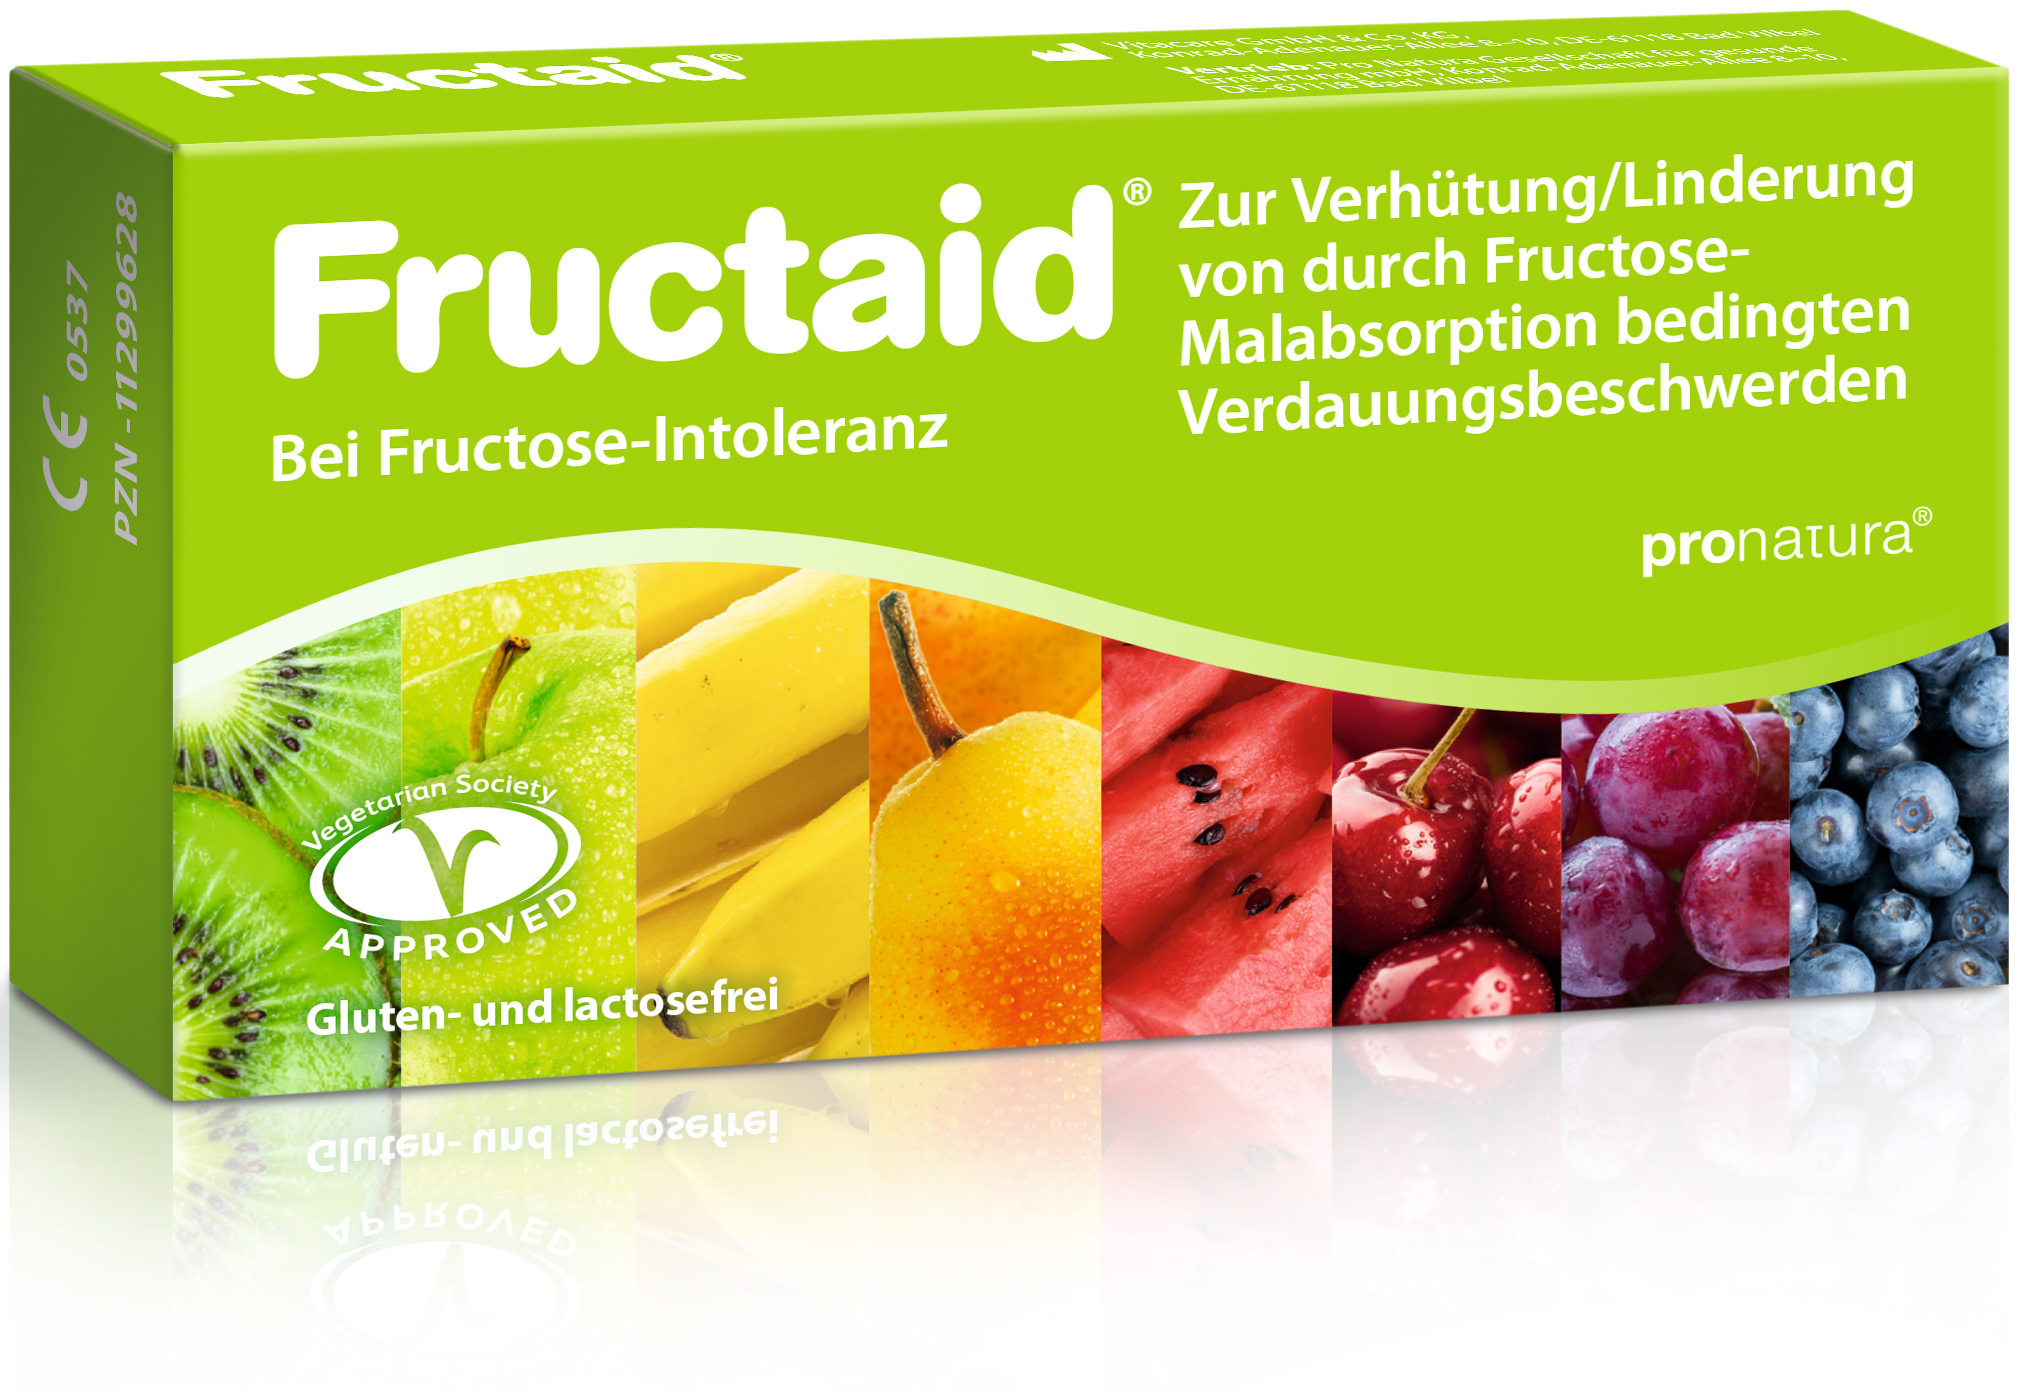 Fructaid Packshot